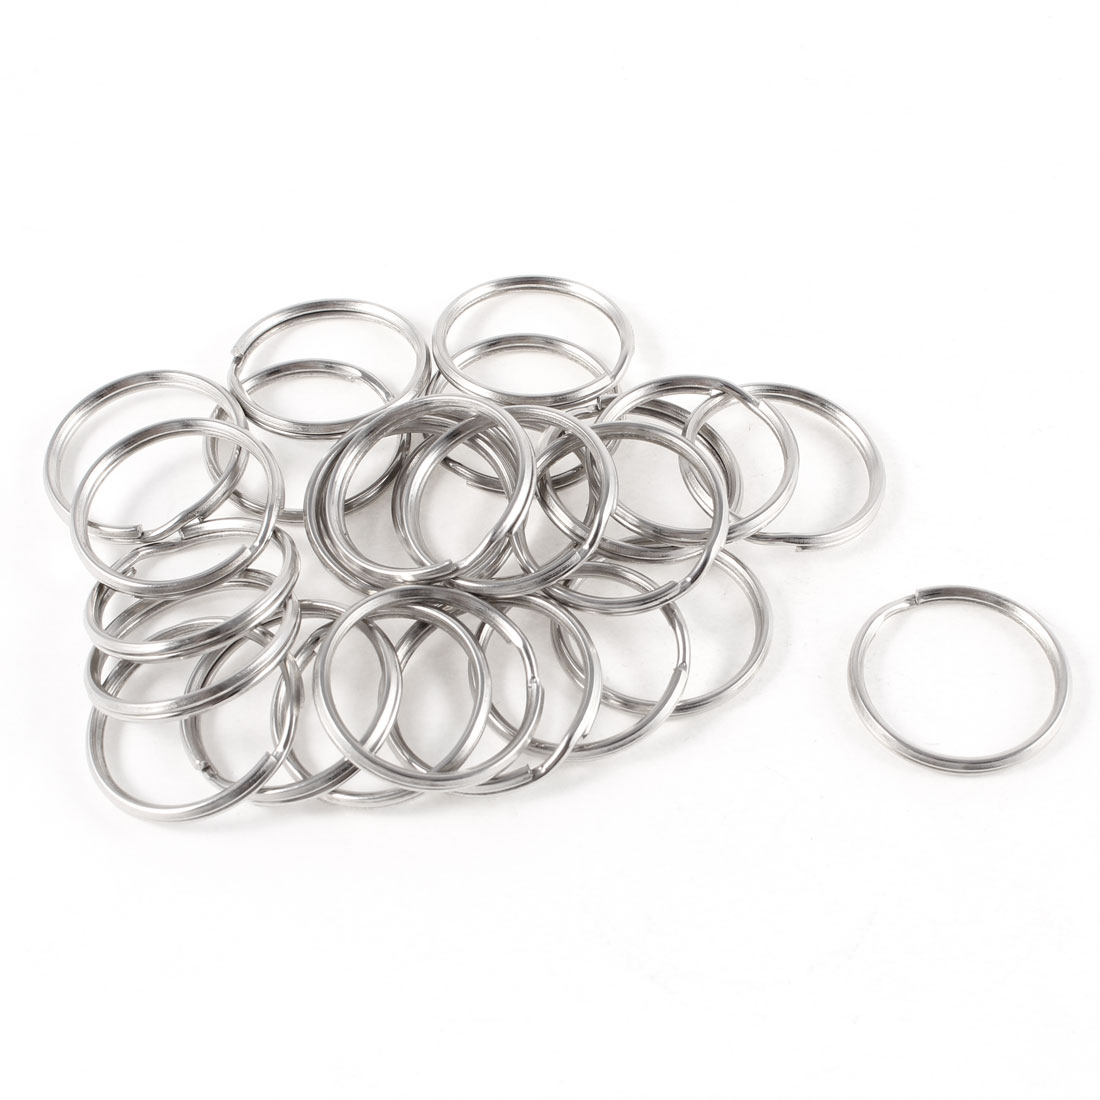 25 Pcs Silver Tone Glossy Metal Double Loop Split Ring Keyring 28mm